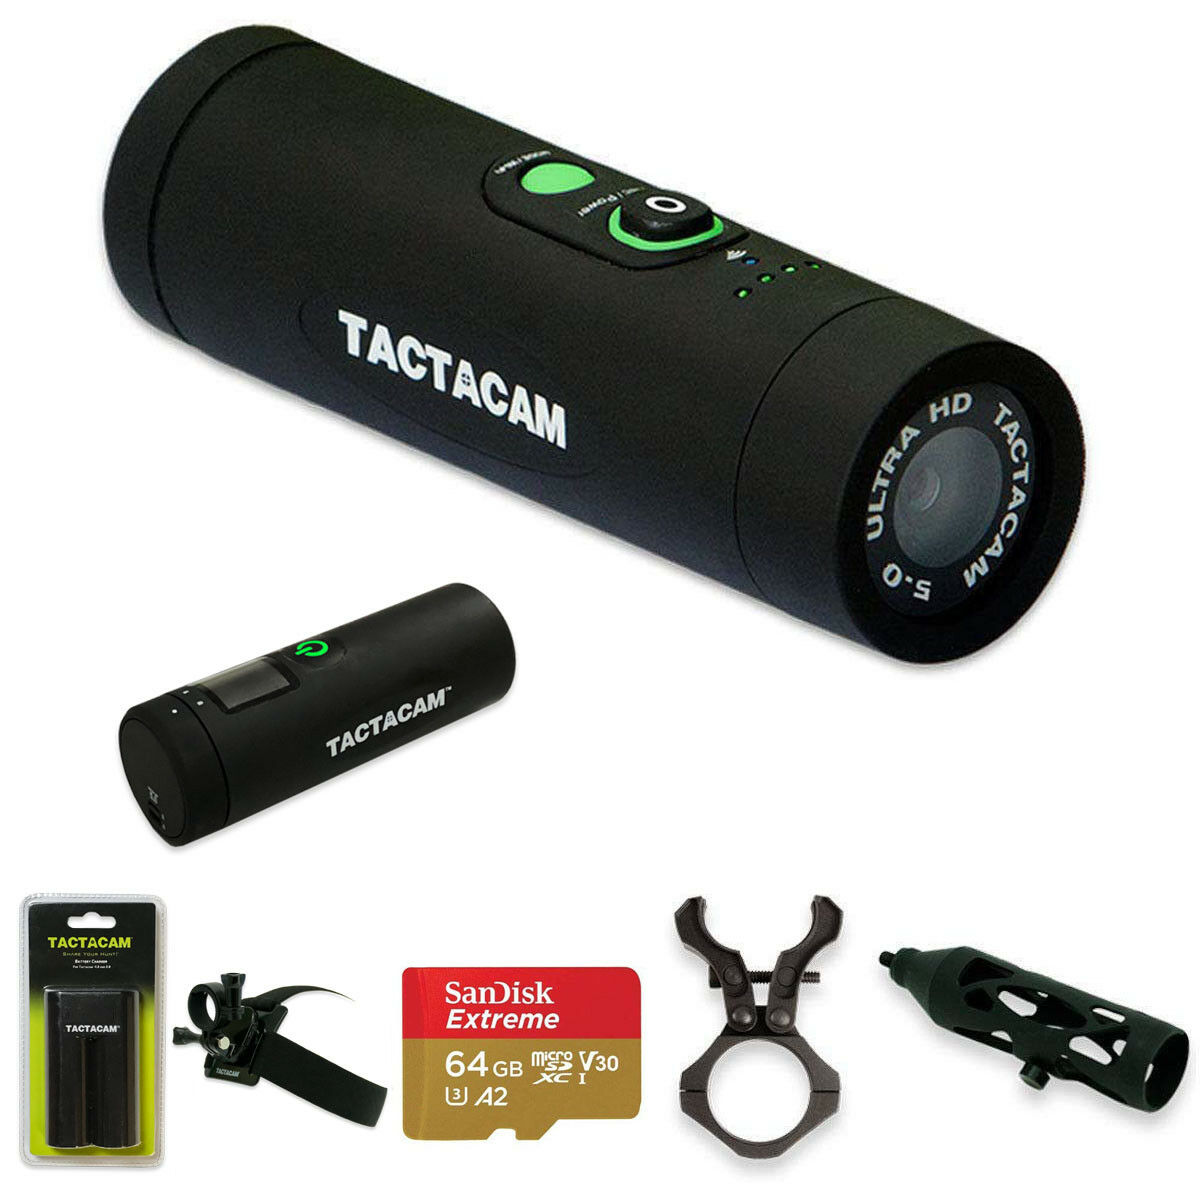 Tactacam 5.0 Bow Hunting Action Camera + 64GB Card + Remote + 2 Mounts & Charger